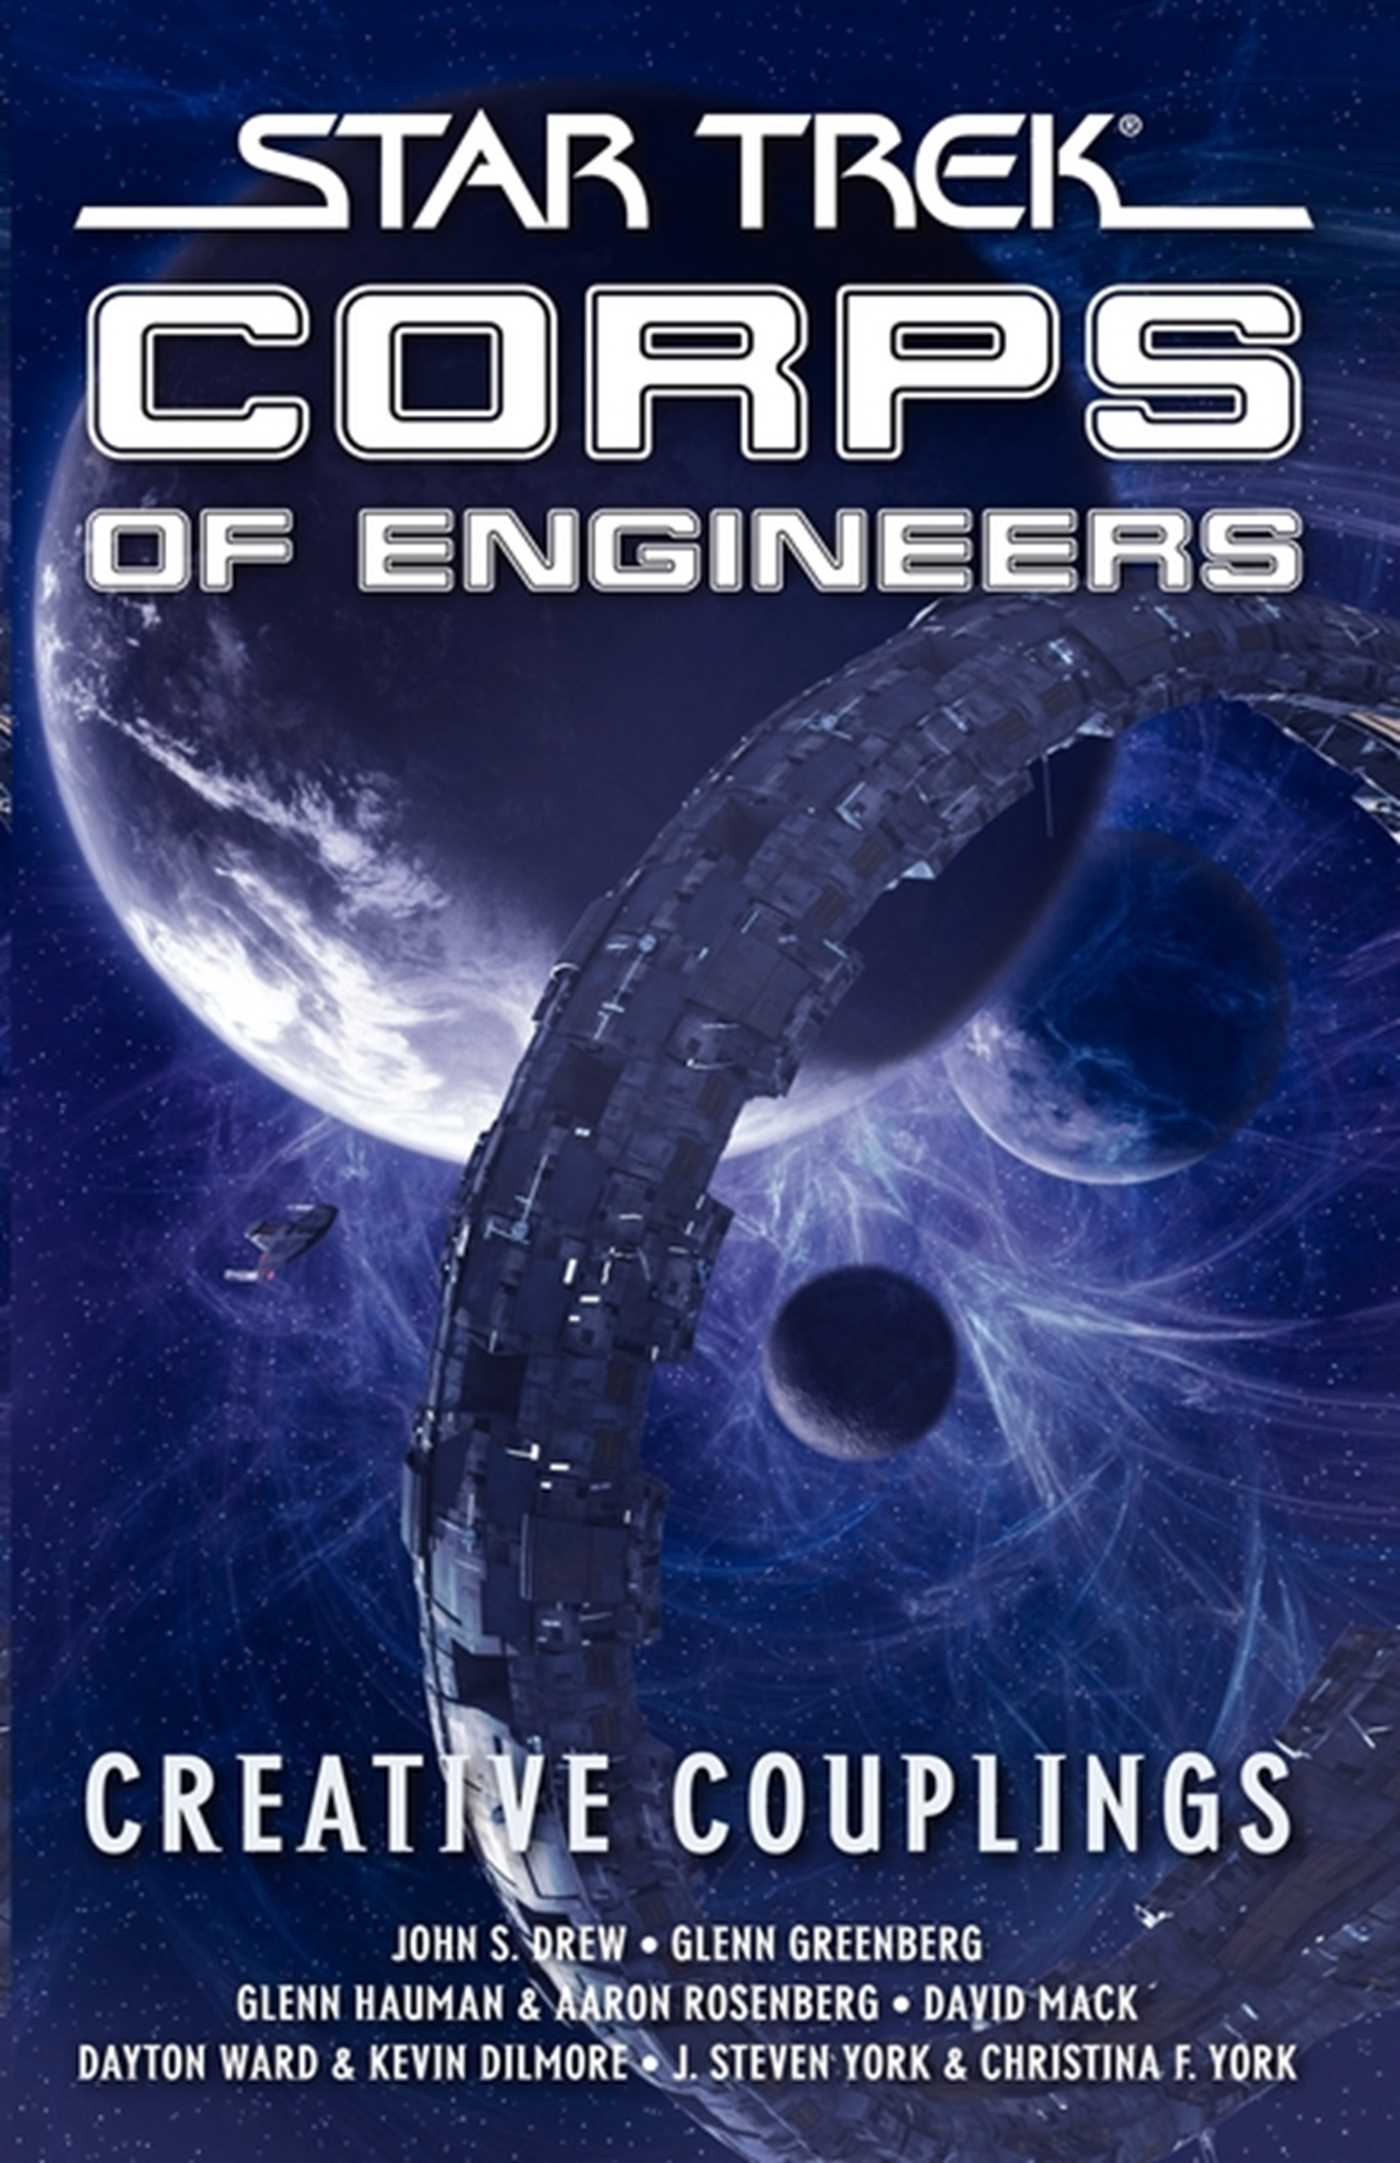 Star-trek-corps-of-engineers-creative-couplings-9781416554745_hr